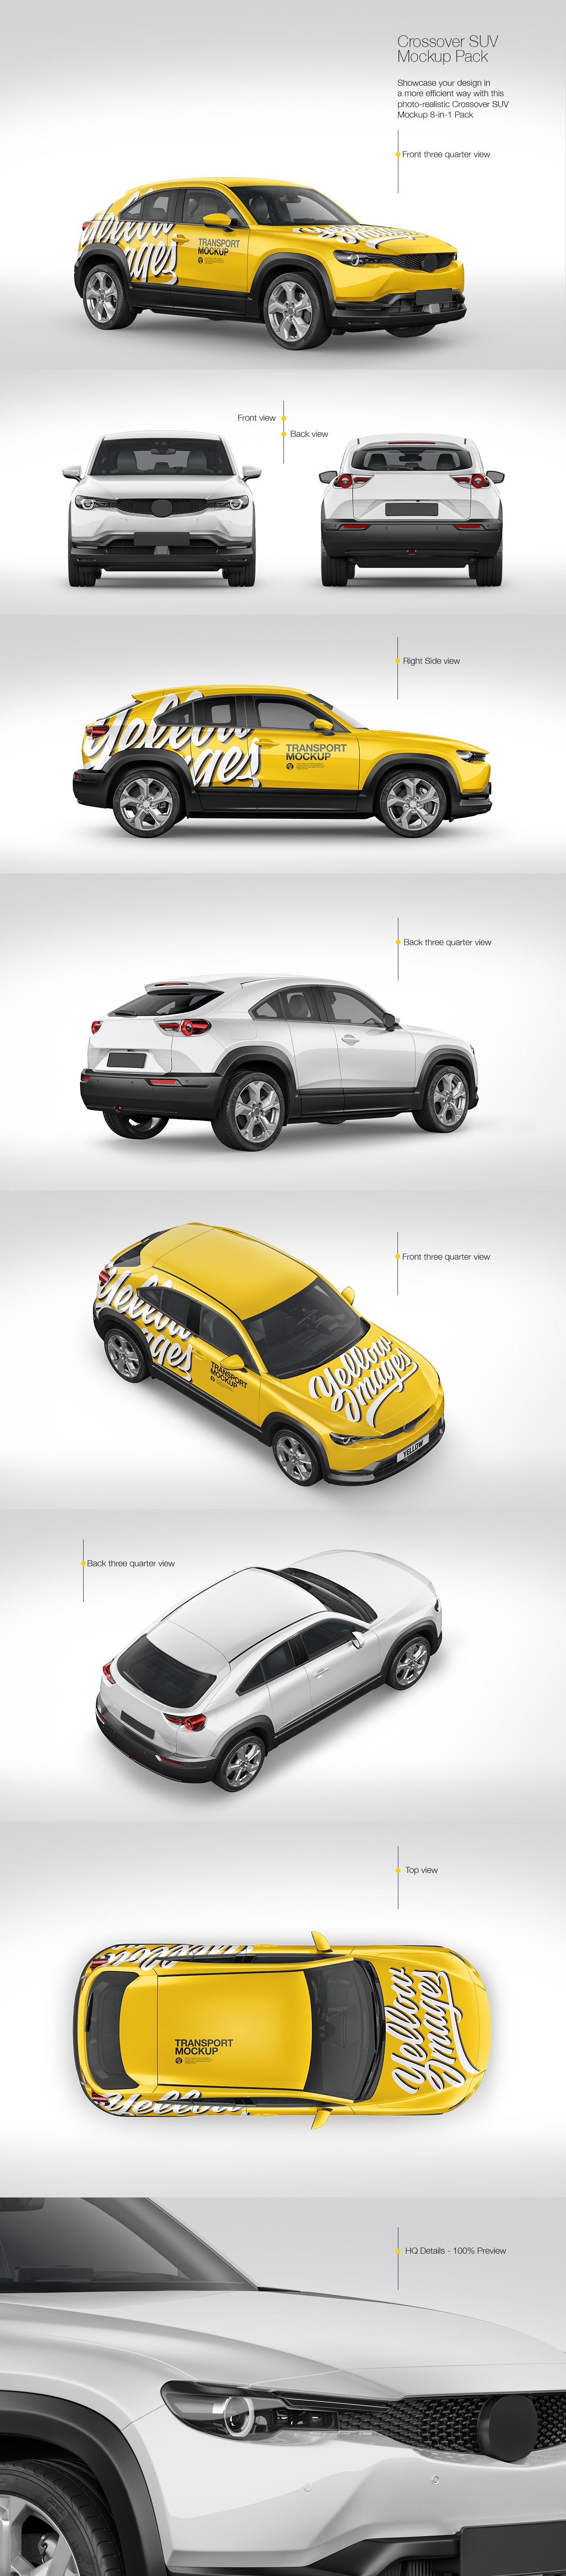 Compact Crossover SUV Mockup - Pack